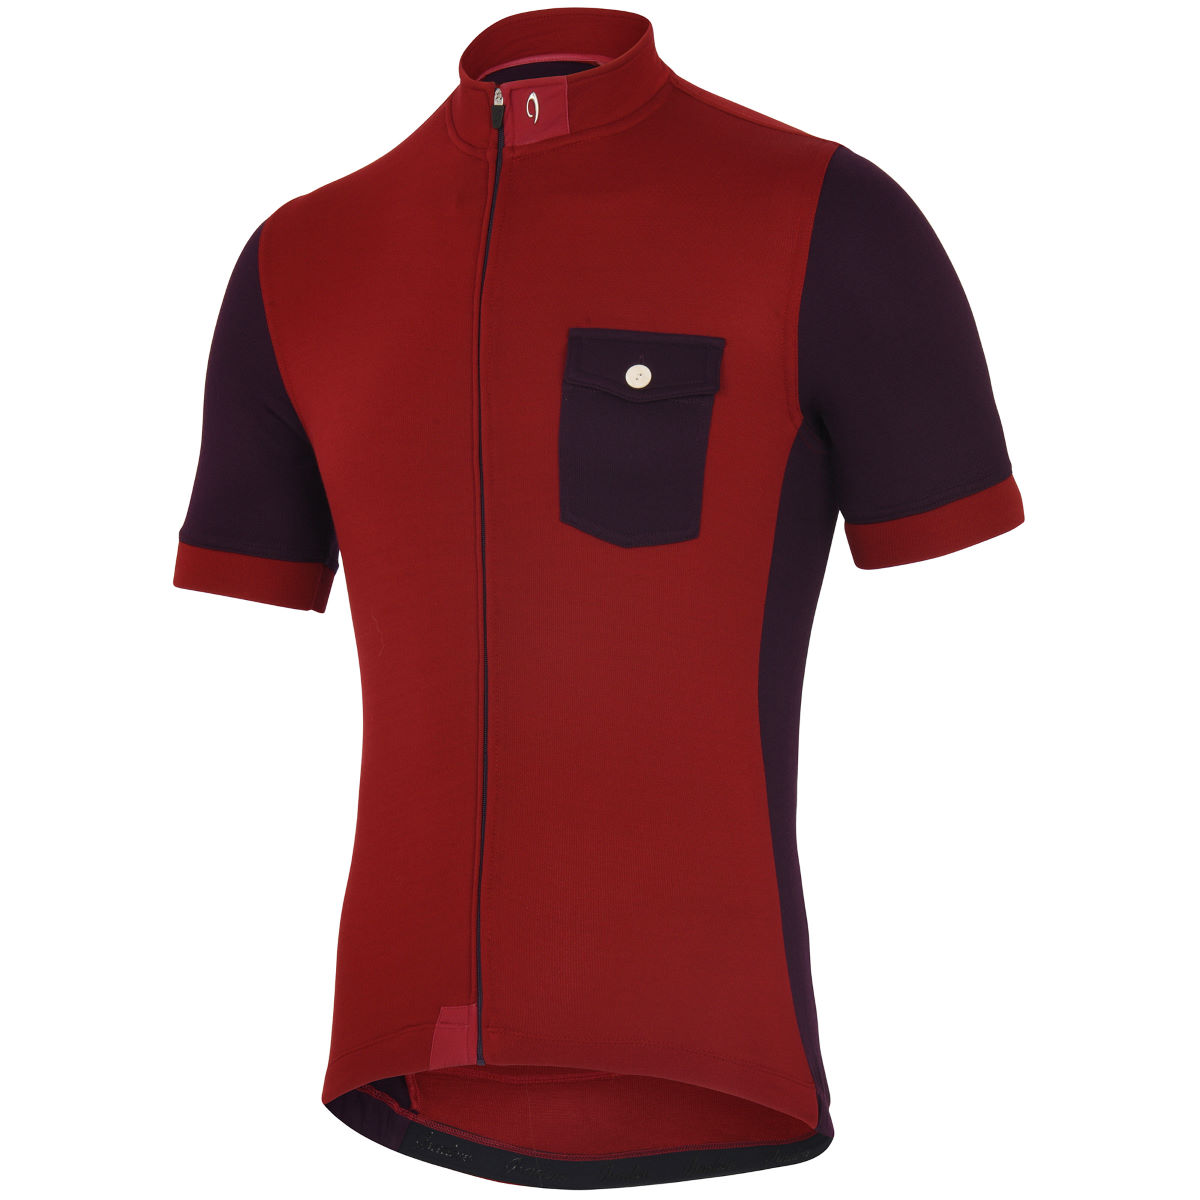 Maillot Isadore Messenger (manches courtes) - XS Rio Red Maillots